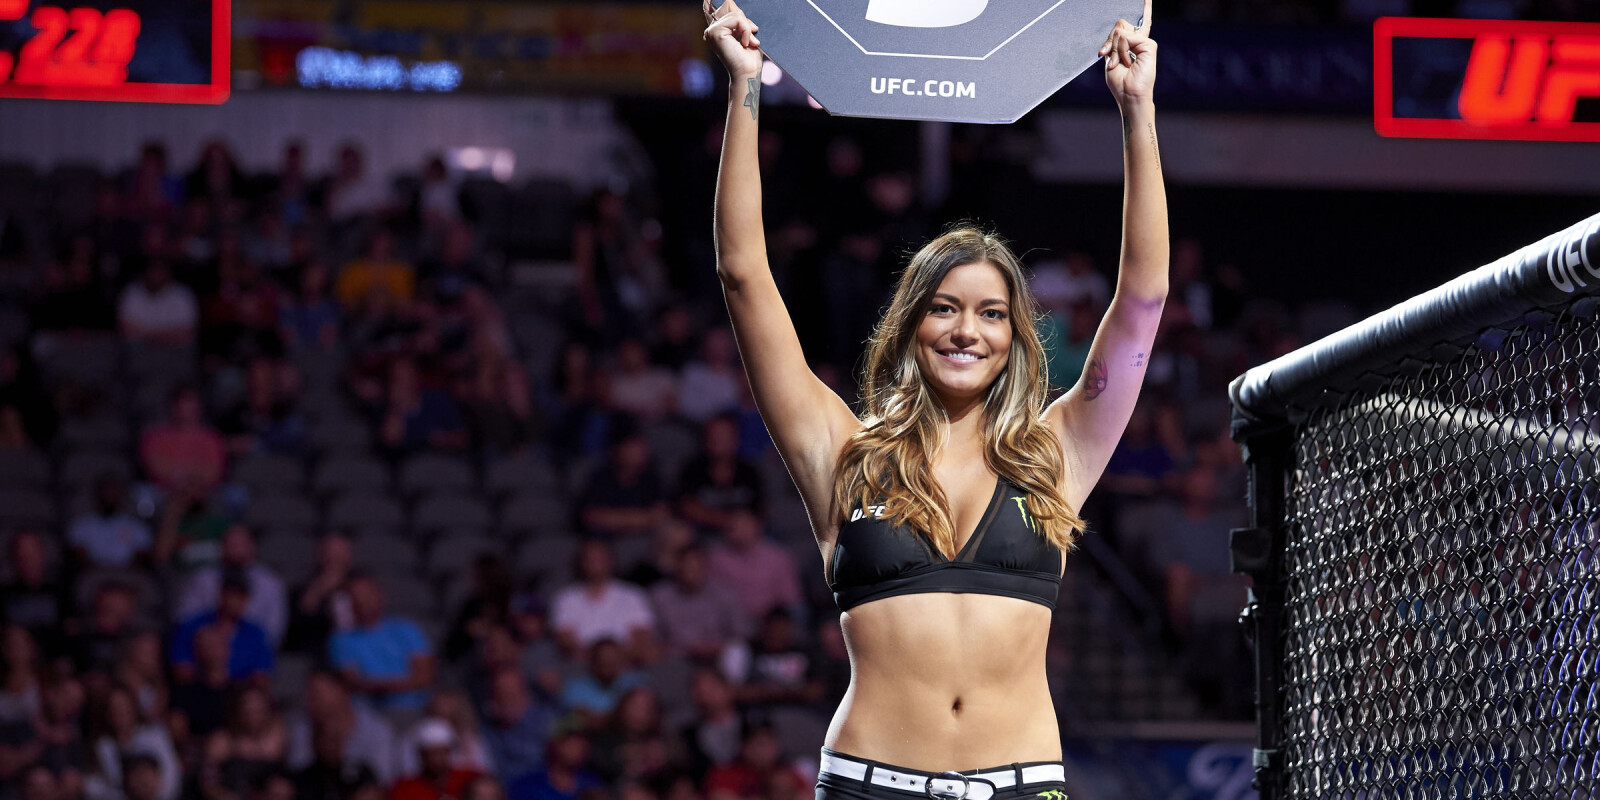 An Octagon Girl walks around the Octagon during the UFC 228 event at American Airlines Center on September 8, 2018 in Dallas, Texas